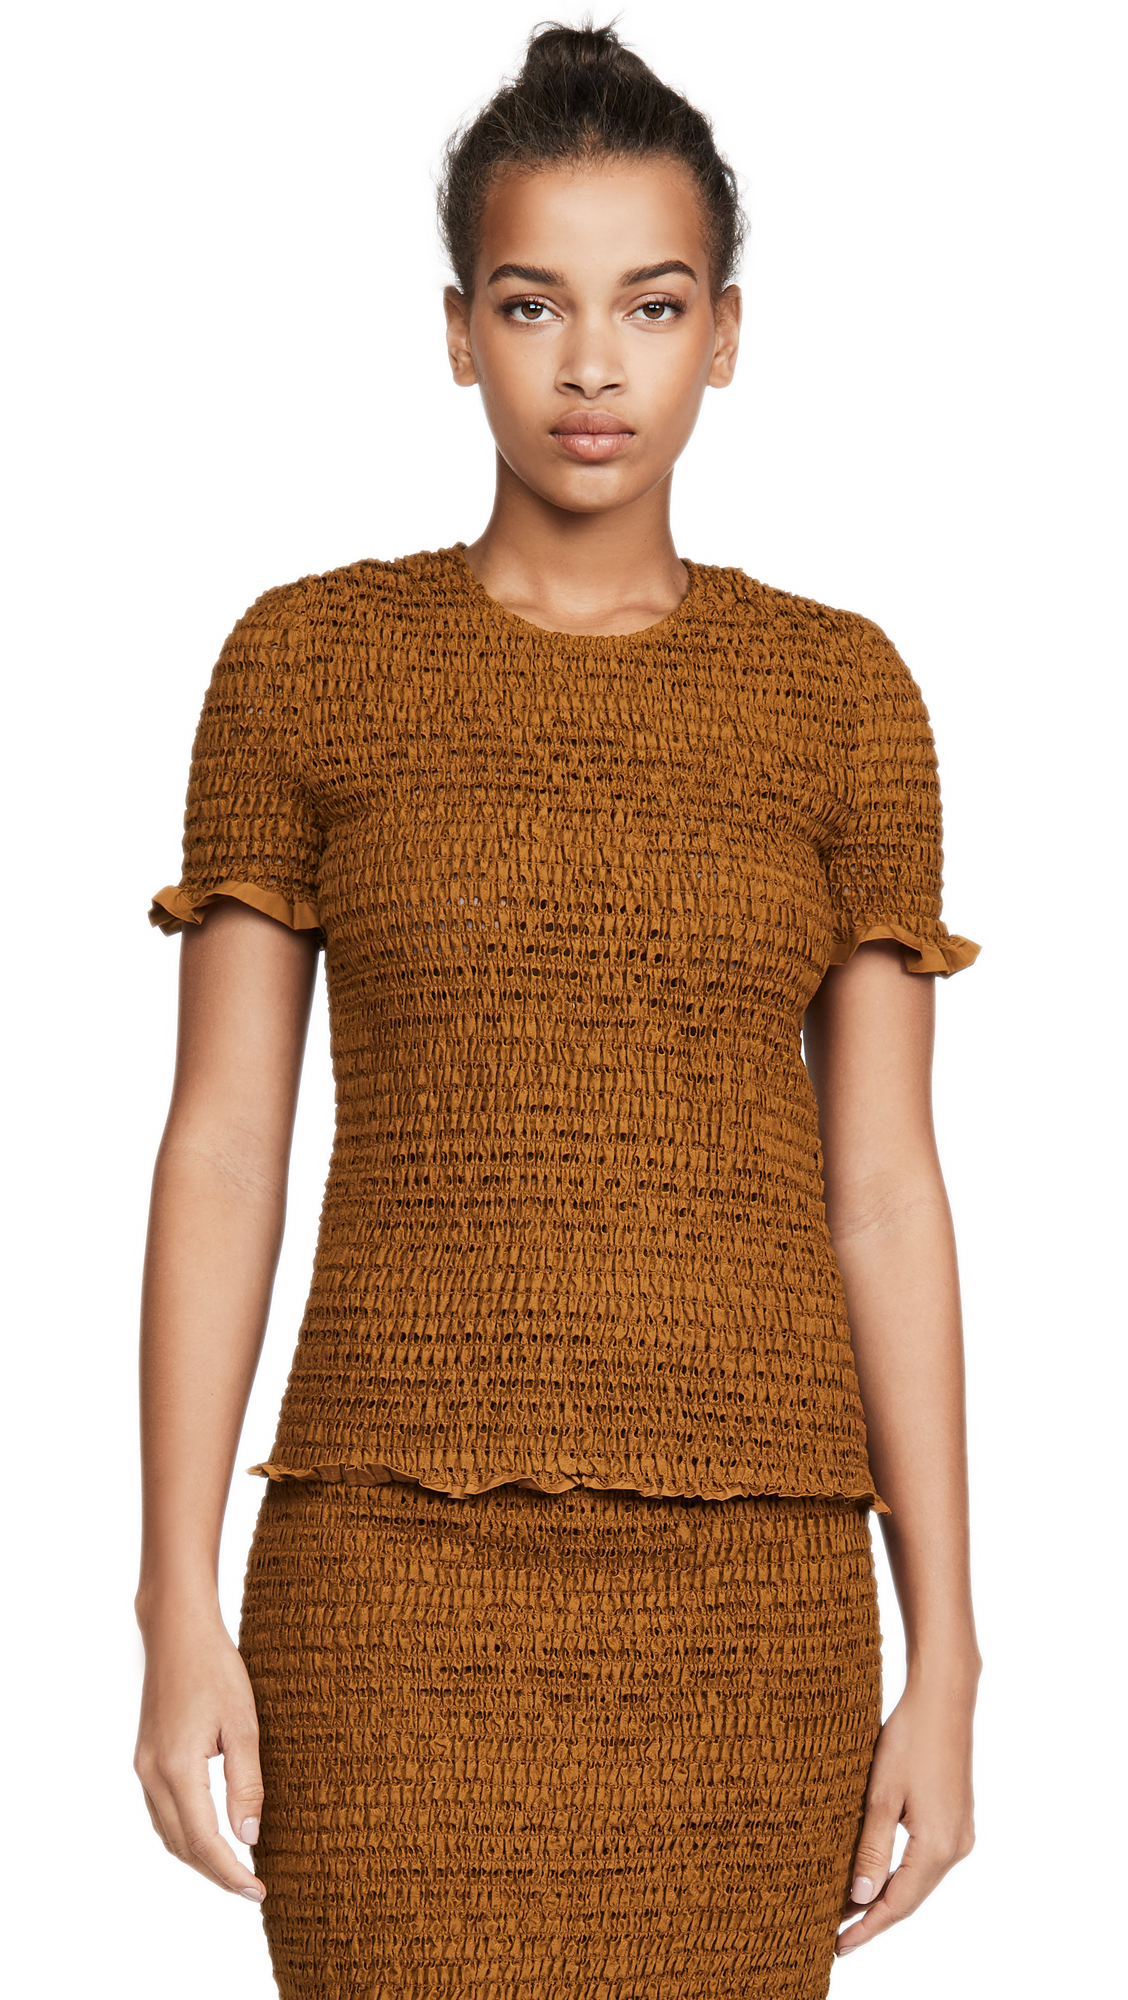 Proenza Schouler White Label Short Sleeve Smocked Top - 55% Off Sale